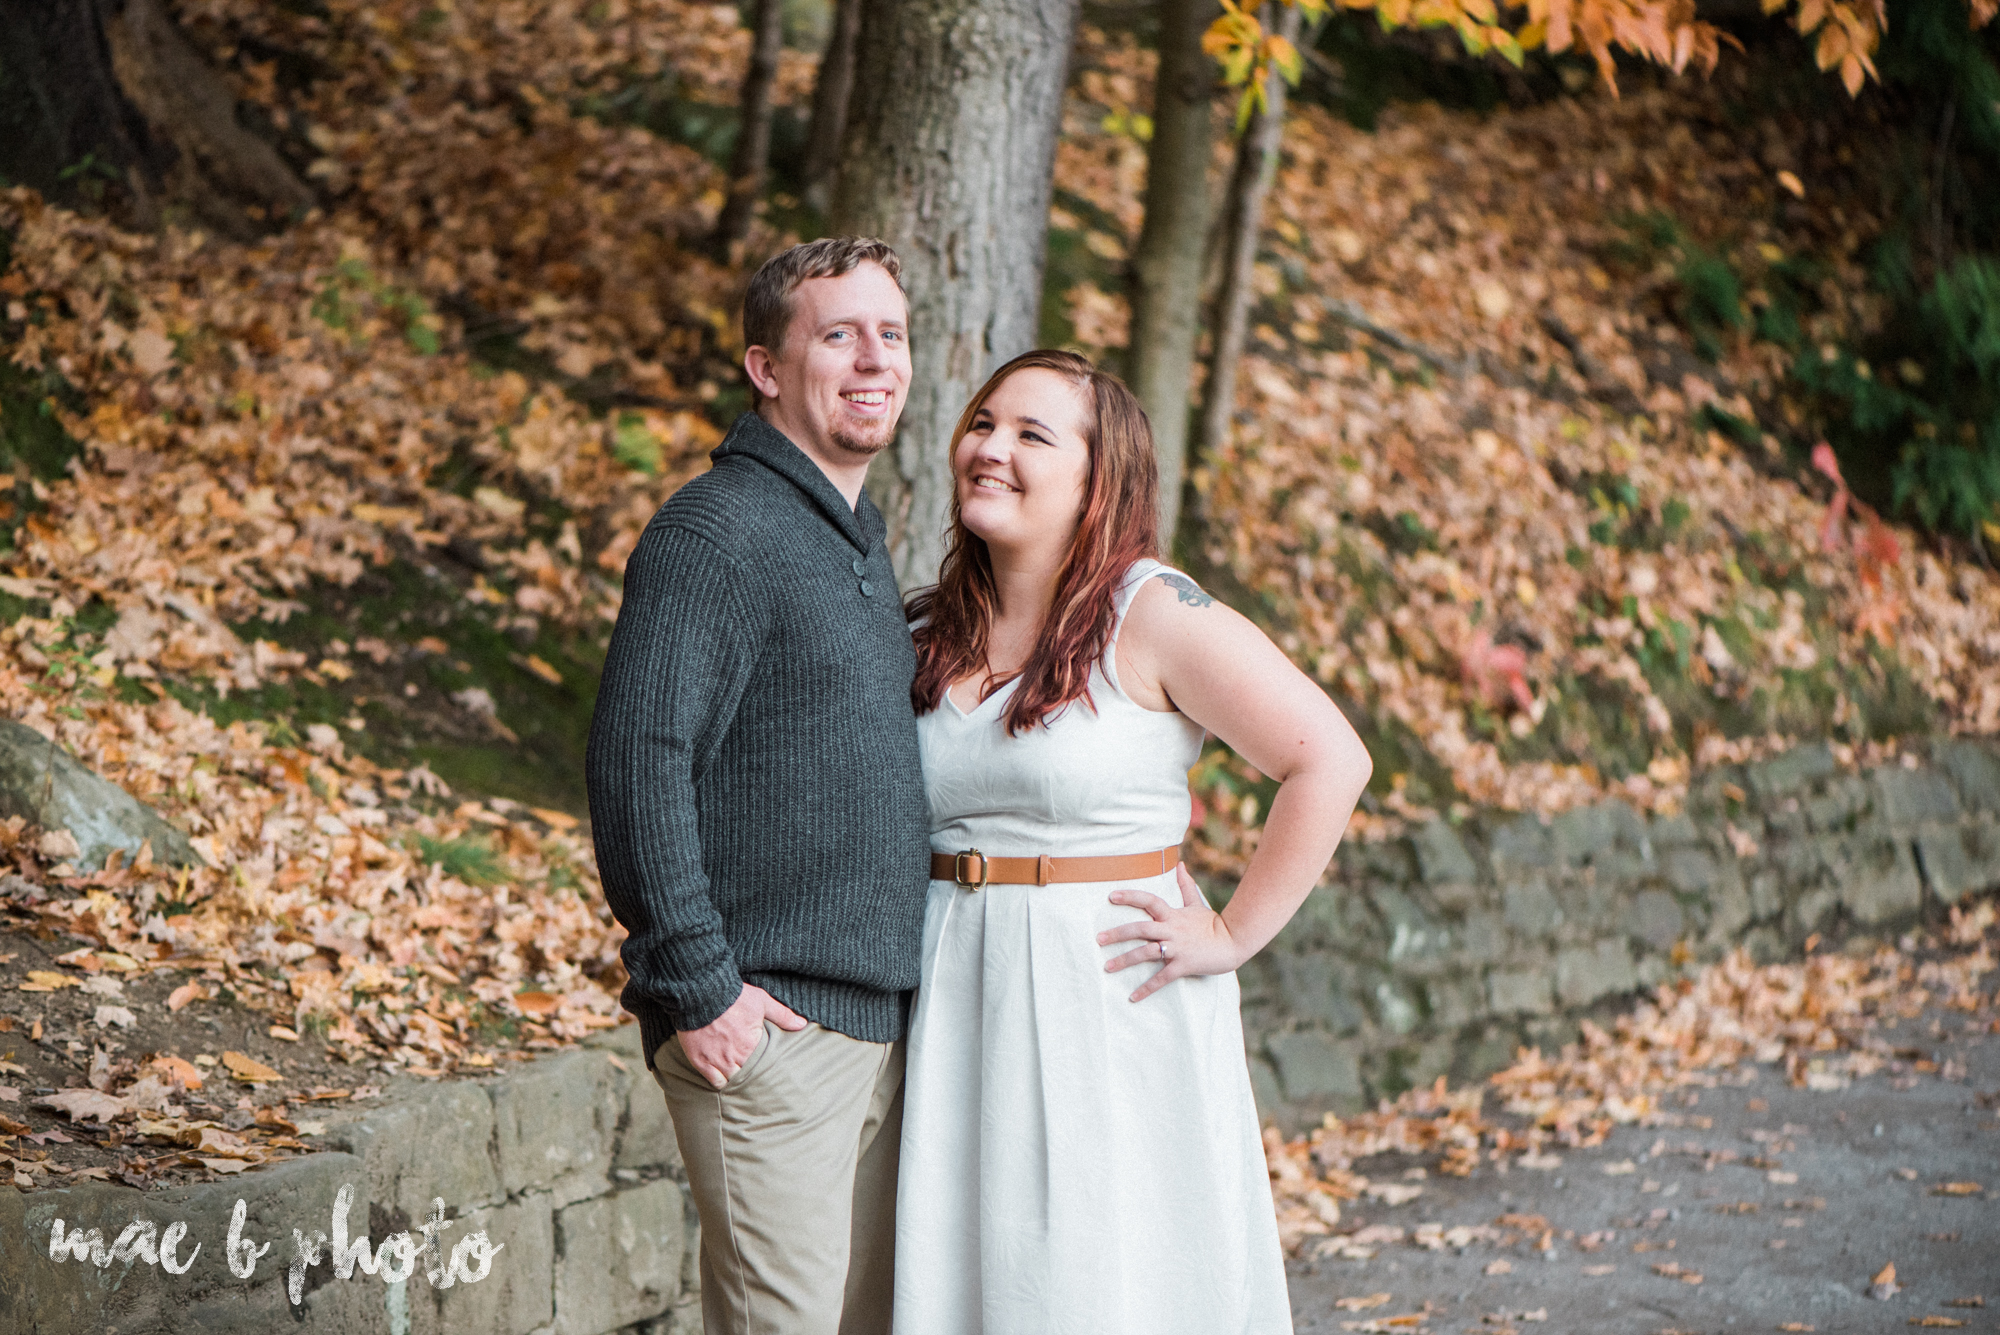 sarah and randy's personal fall engagement session at mill creek park in youngstown ohio-26.jpg